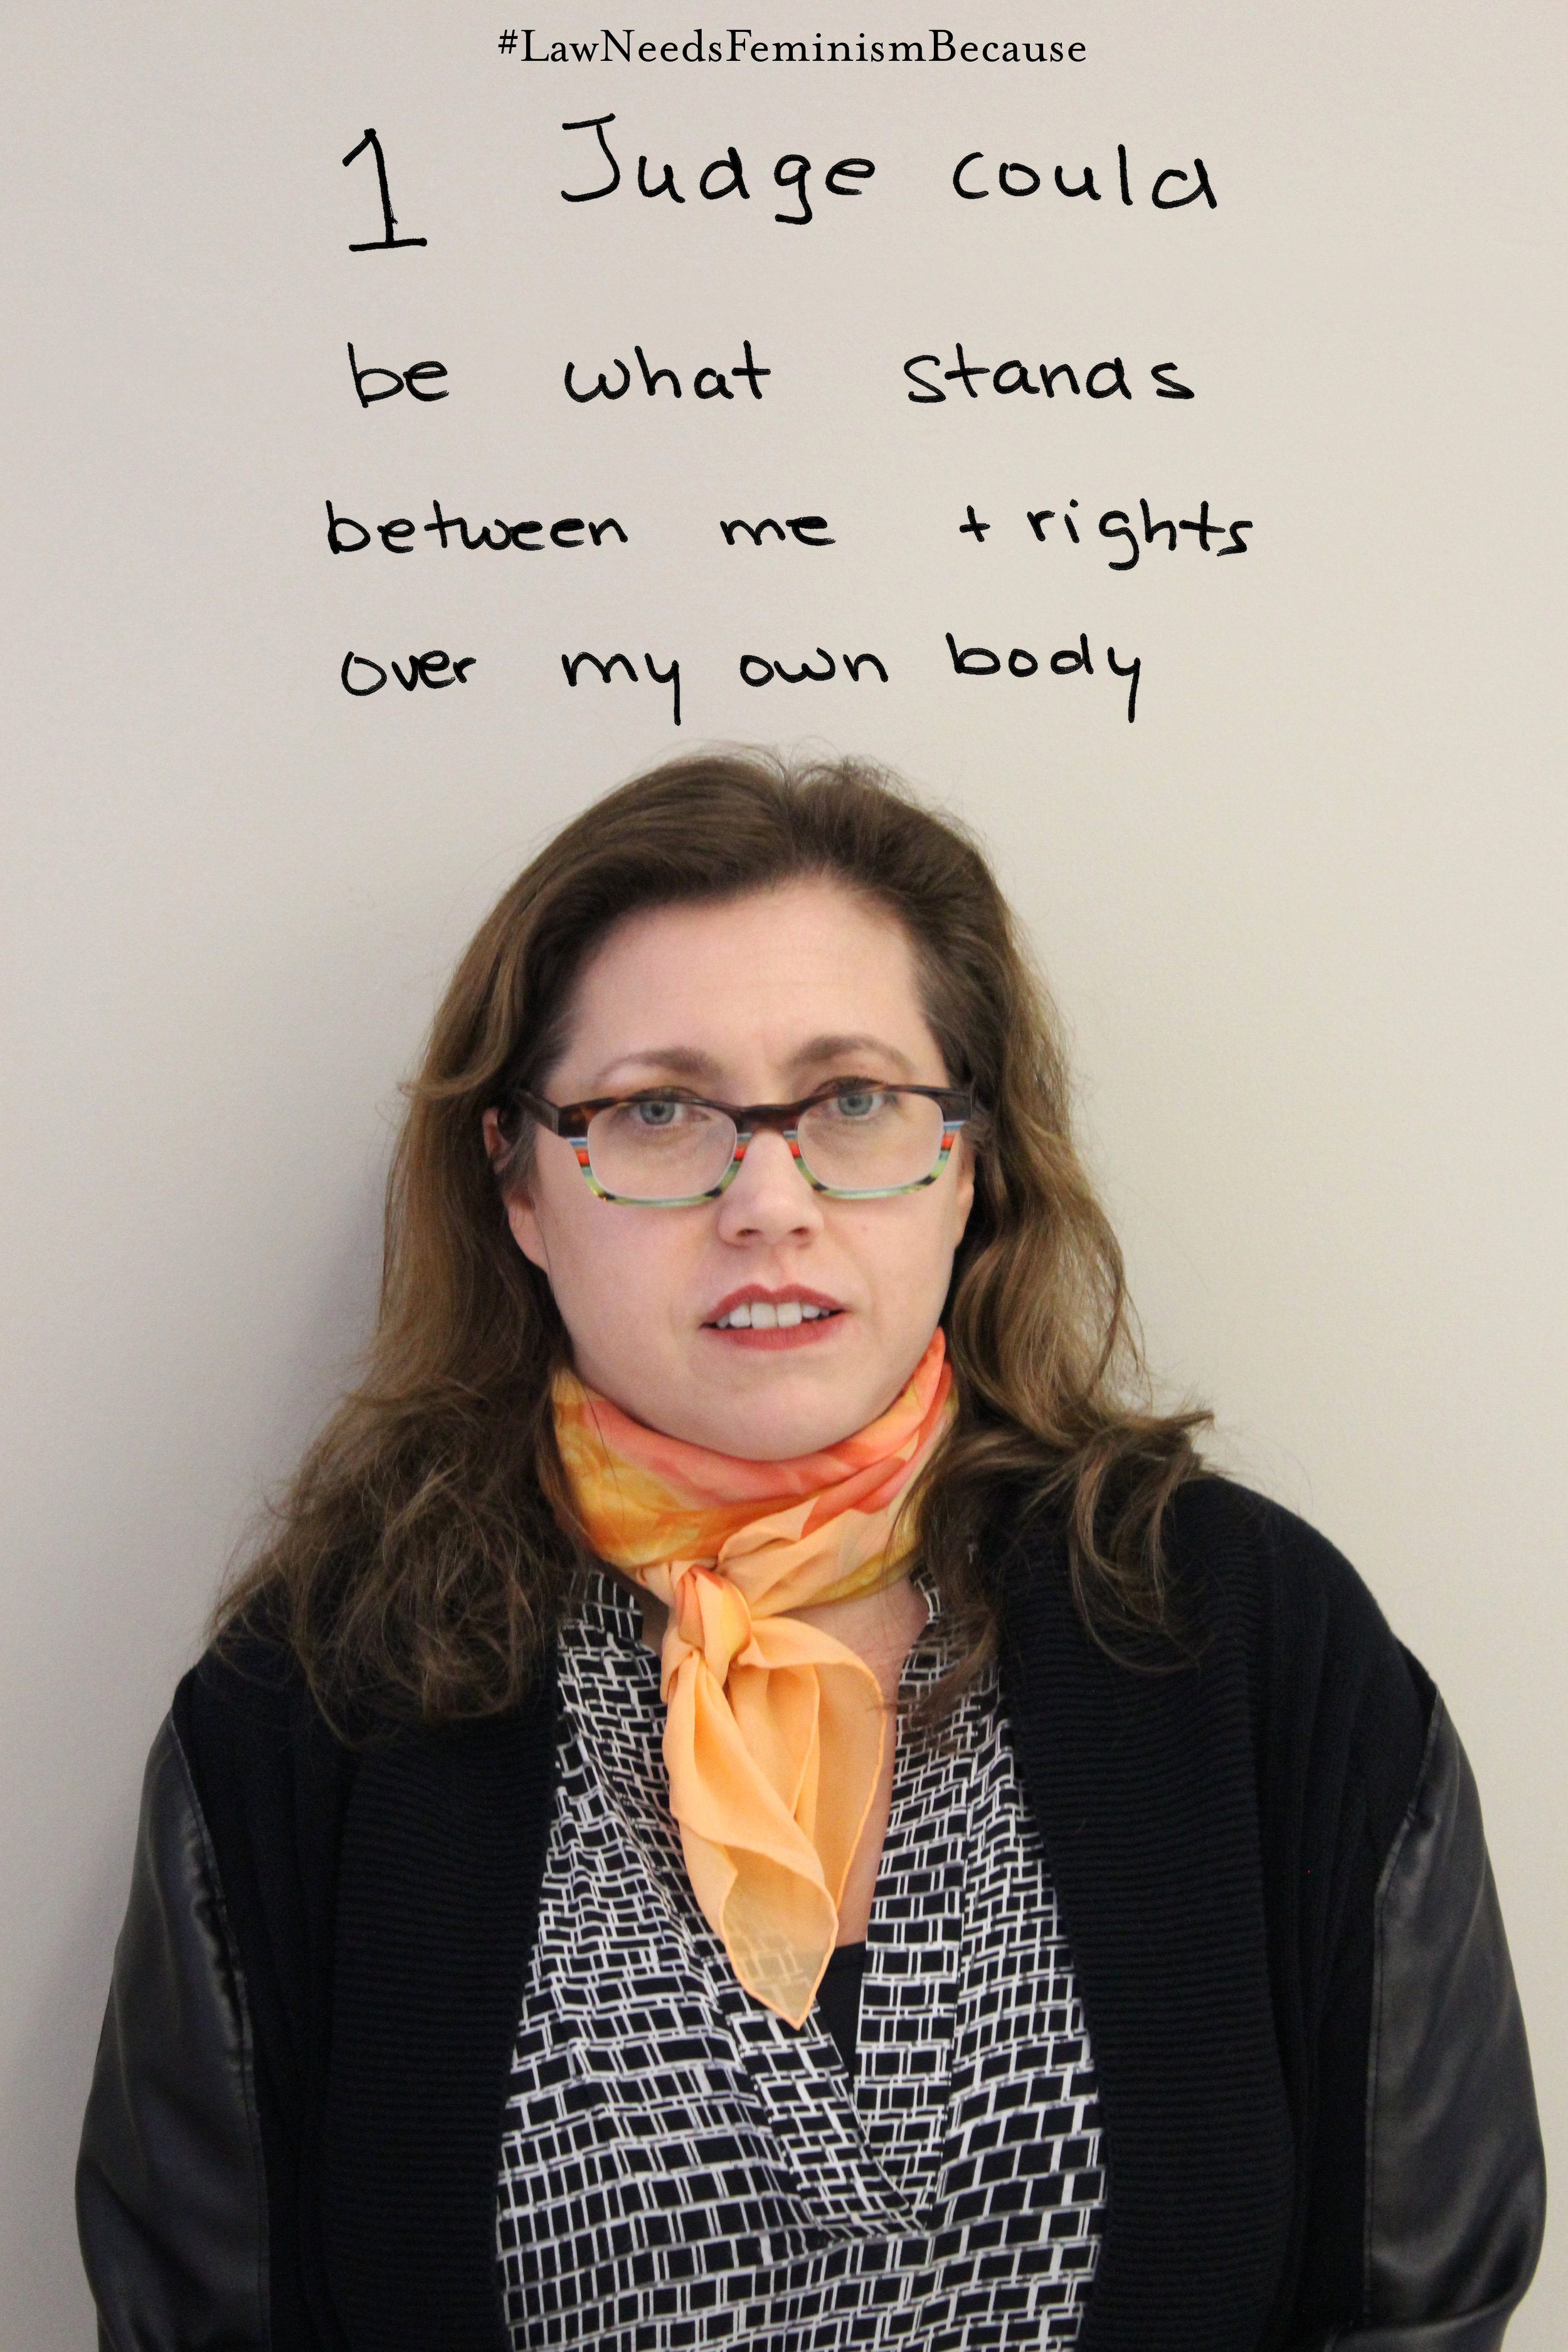 """Law Needs Feminism Because  """"1 judge could be what stands between me and rights over my own body."""""""